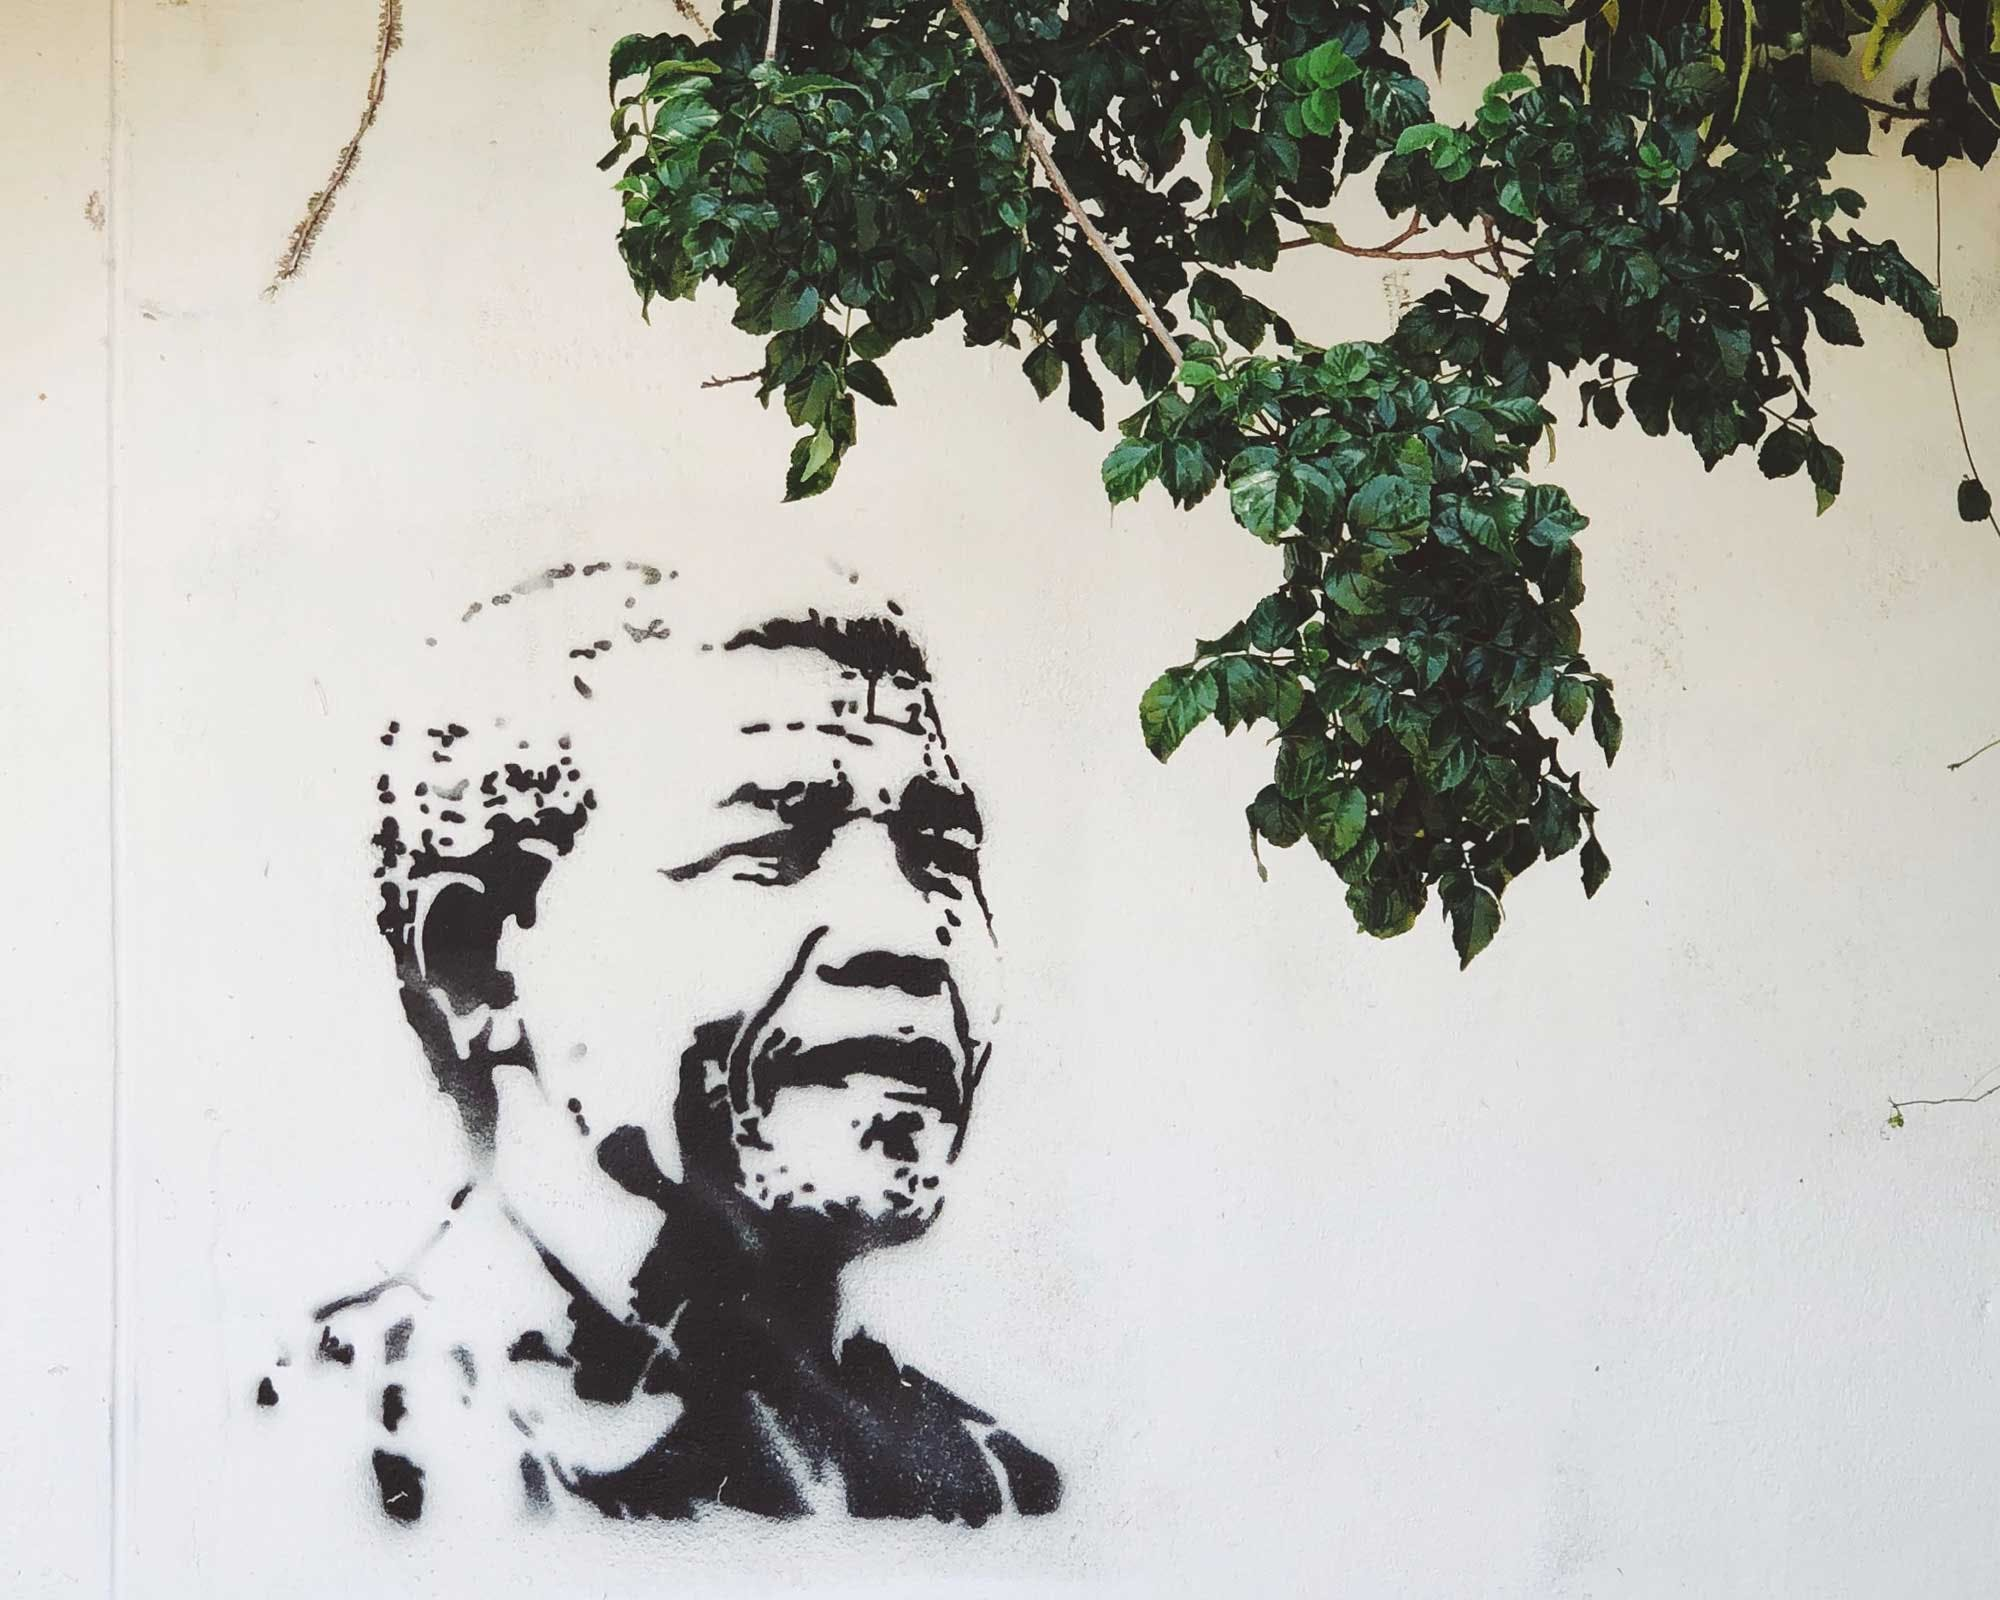 A street art painting of Nelson Mandela on a wall